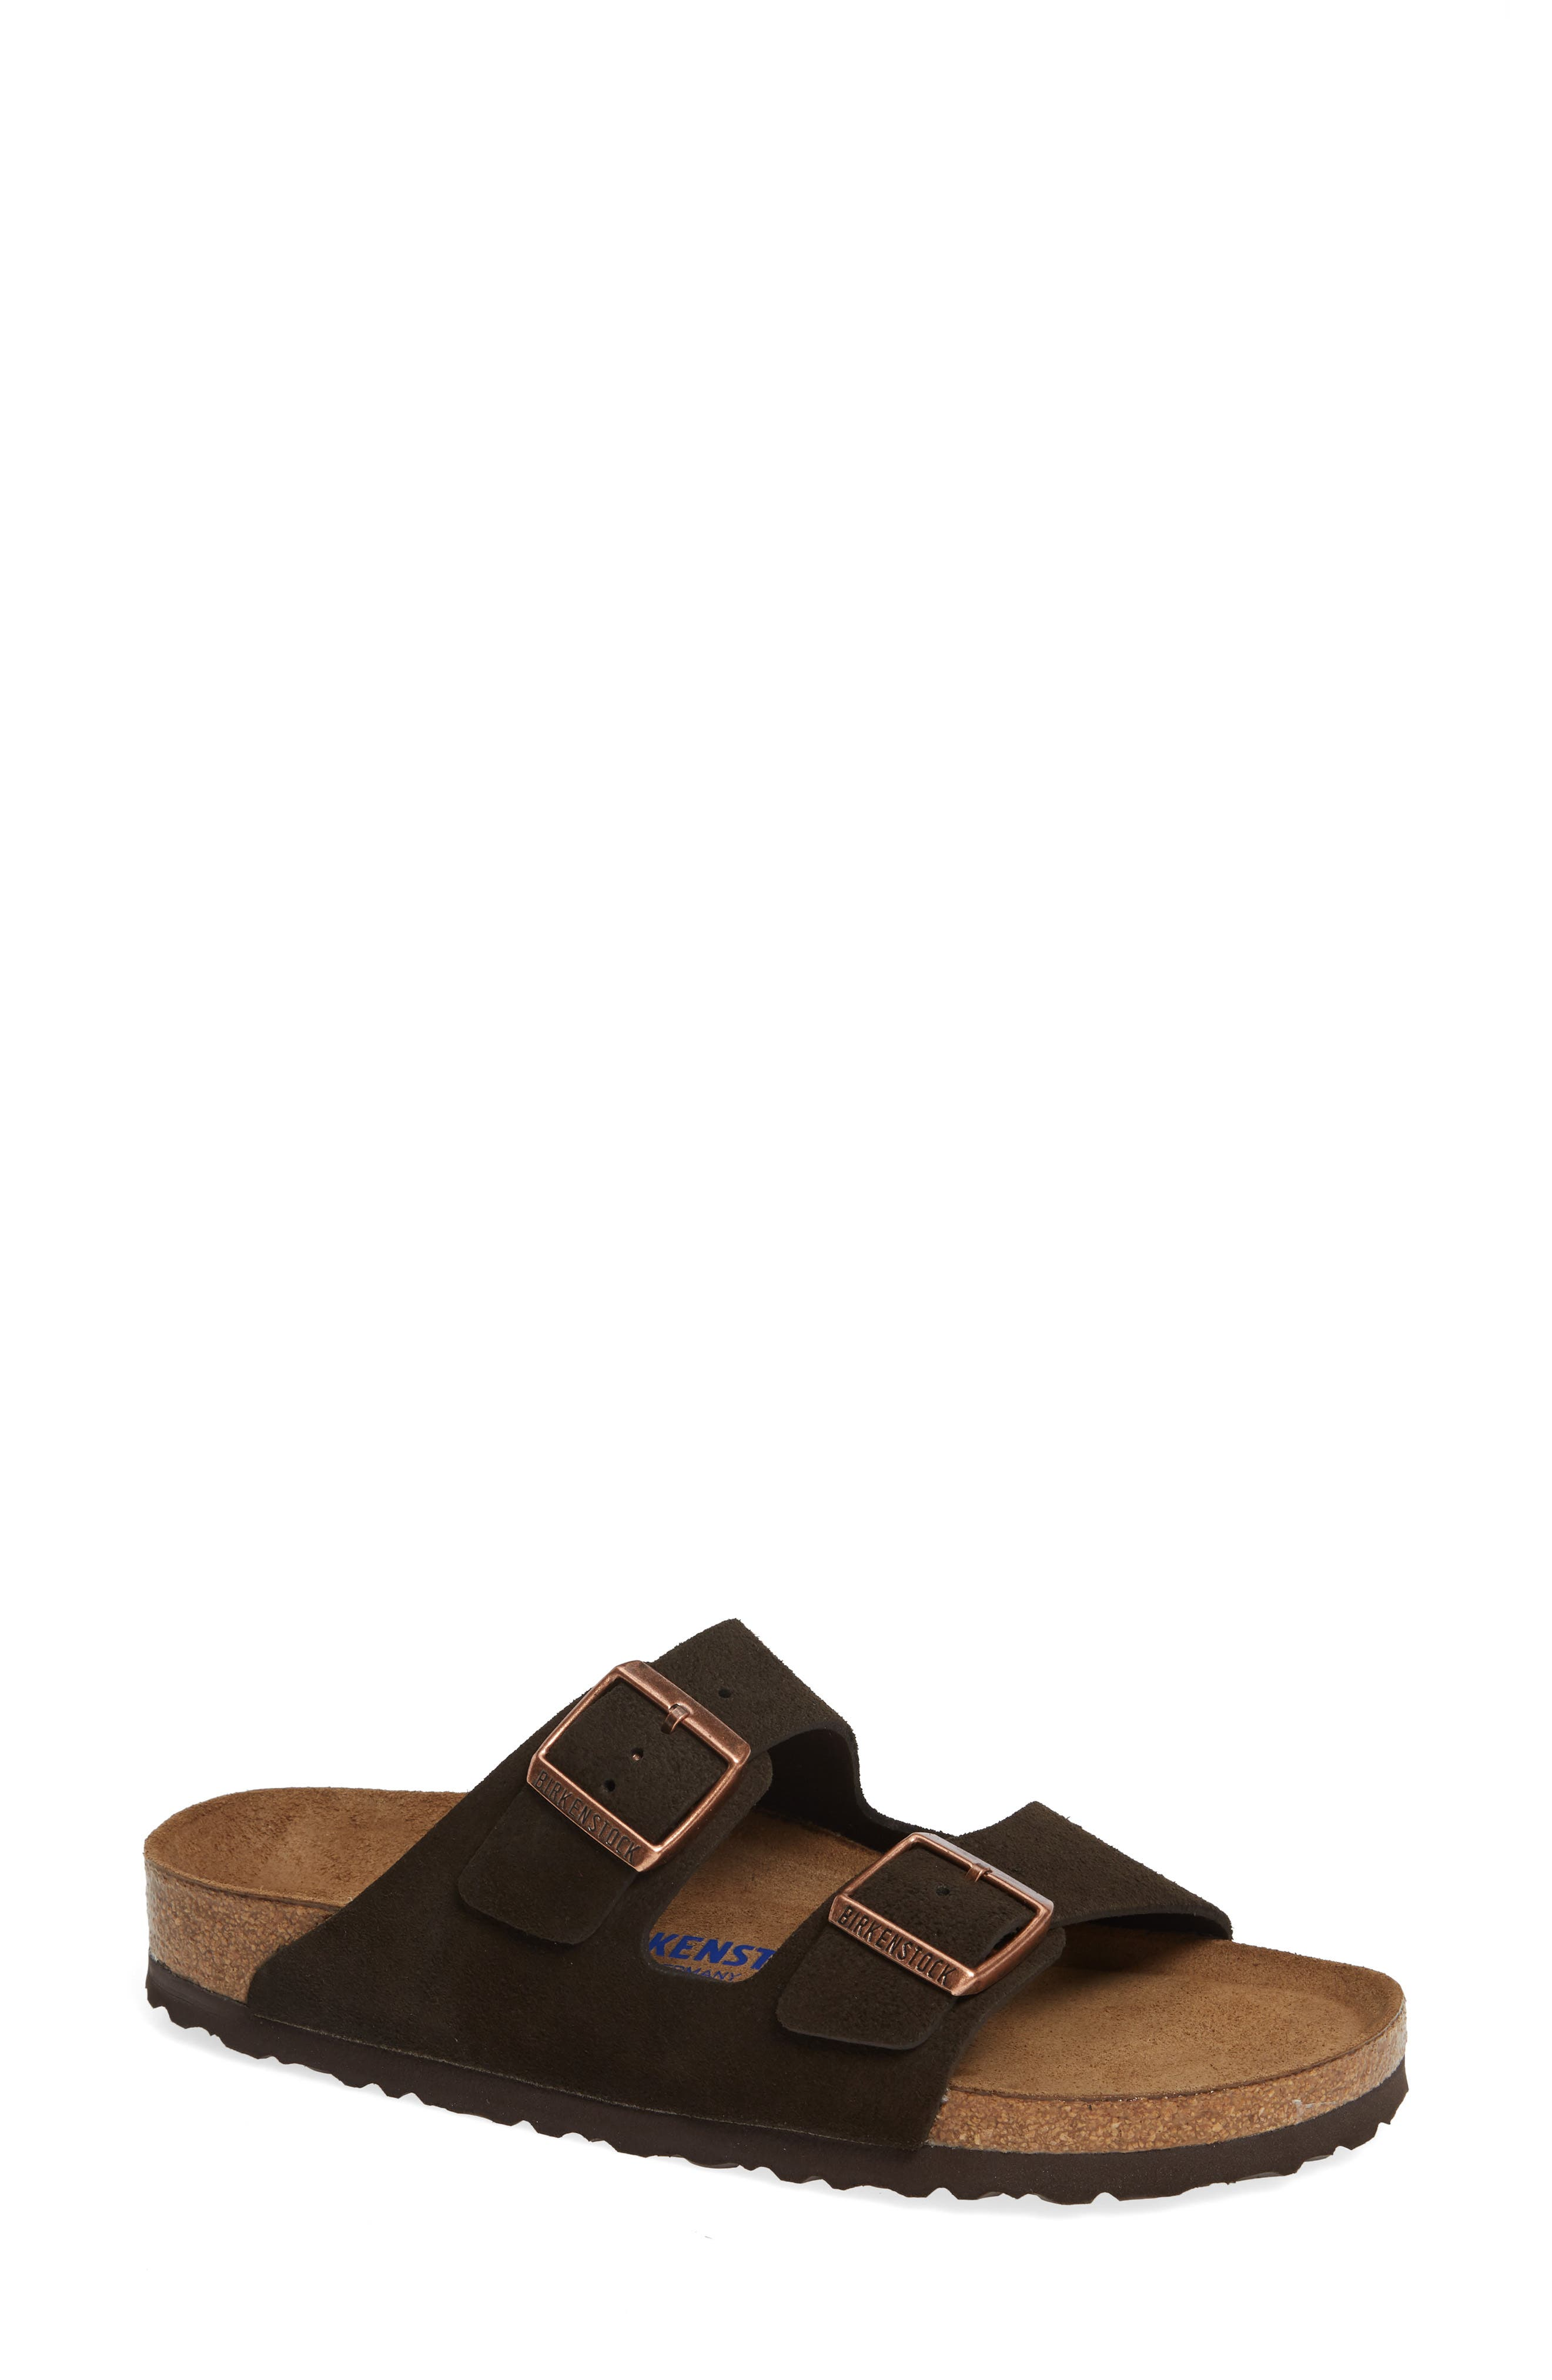 BIRKENSTOCK 'Arizona' Soft Footbed Suede Sandal, Main, color, MOCHA SUEDE